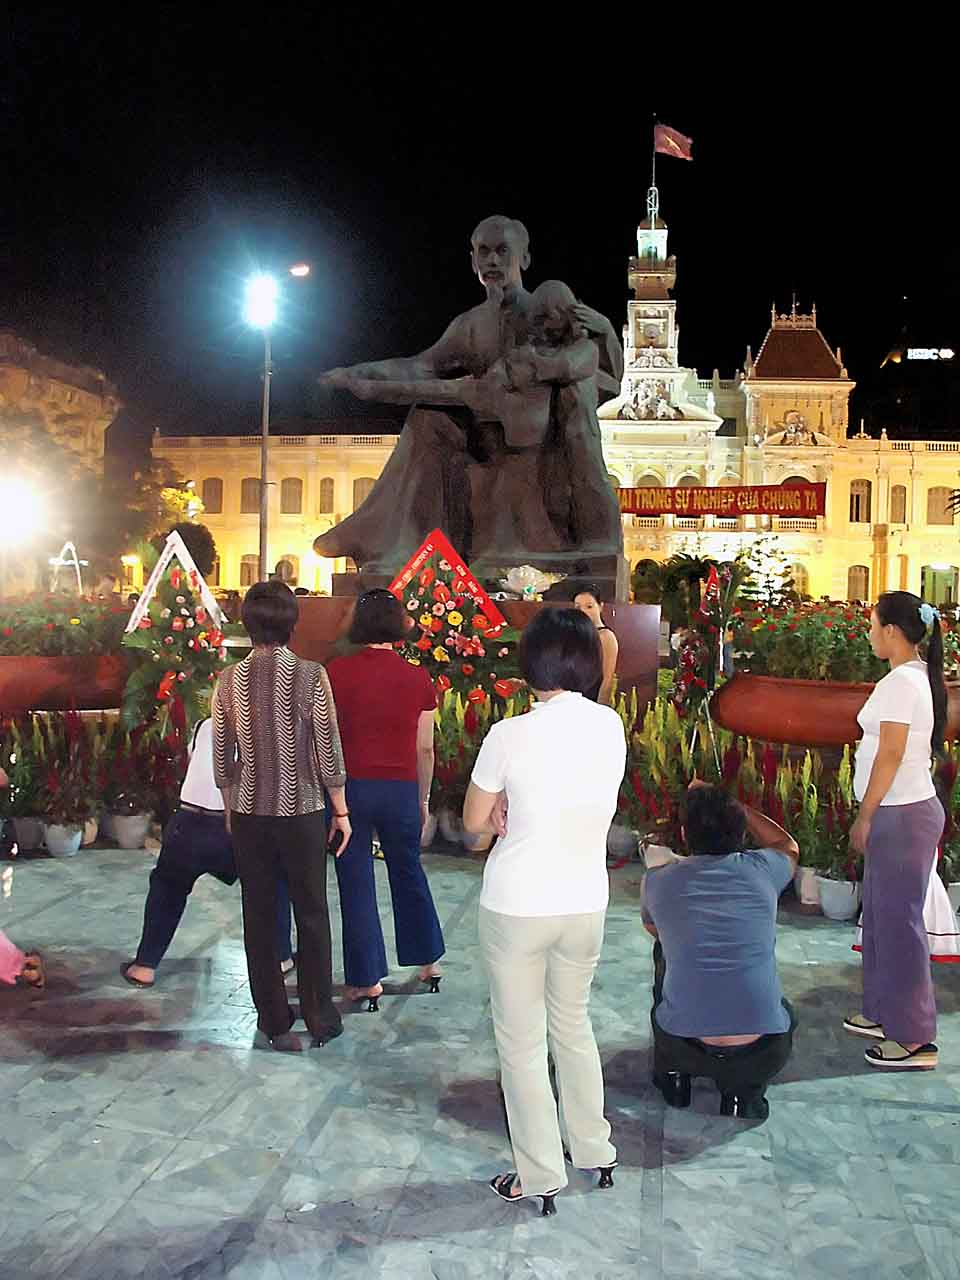 The statue of Ho Chi Minh in front of City Hall - Saigon